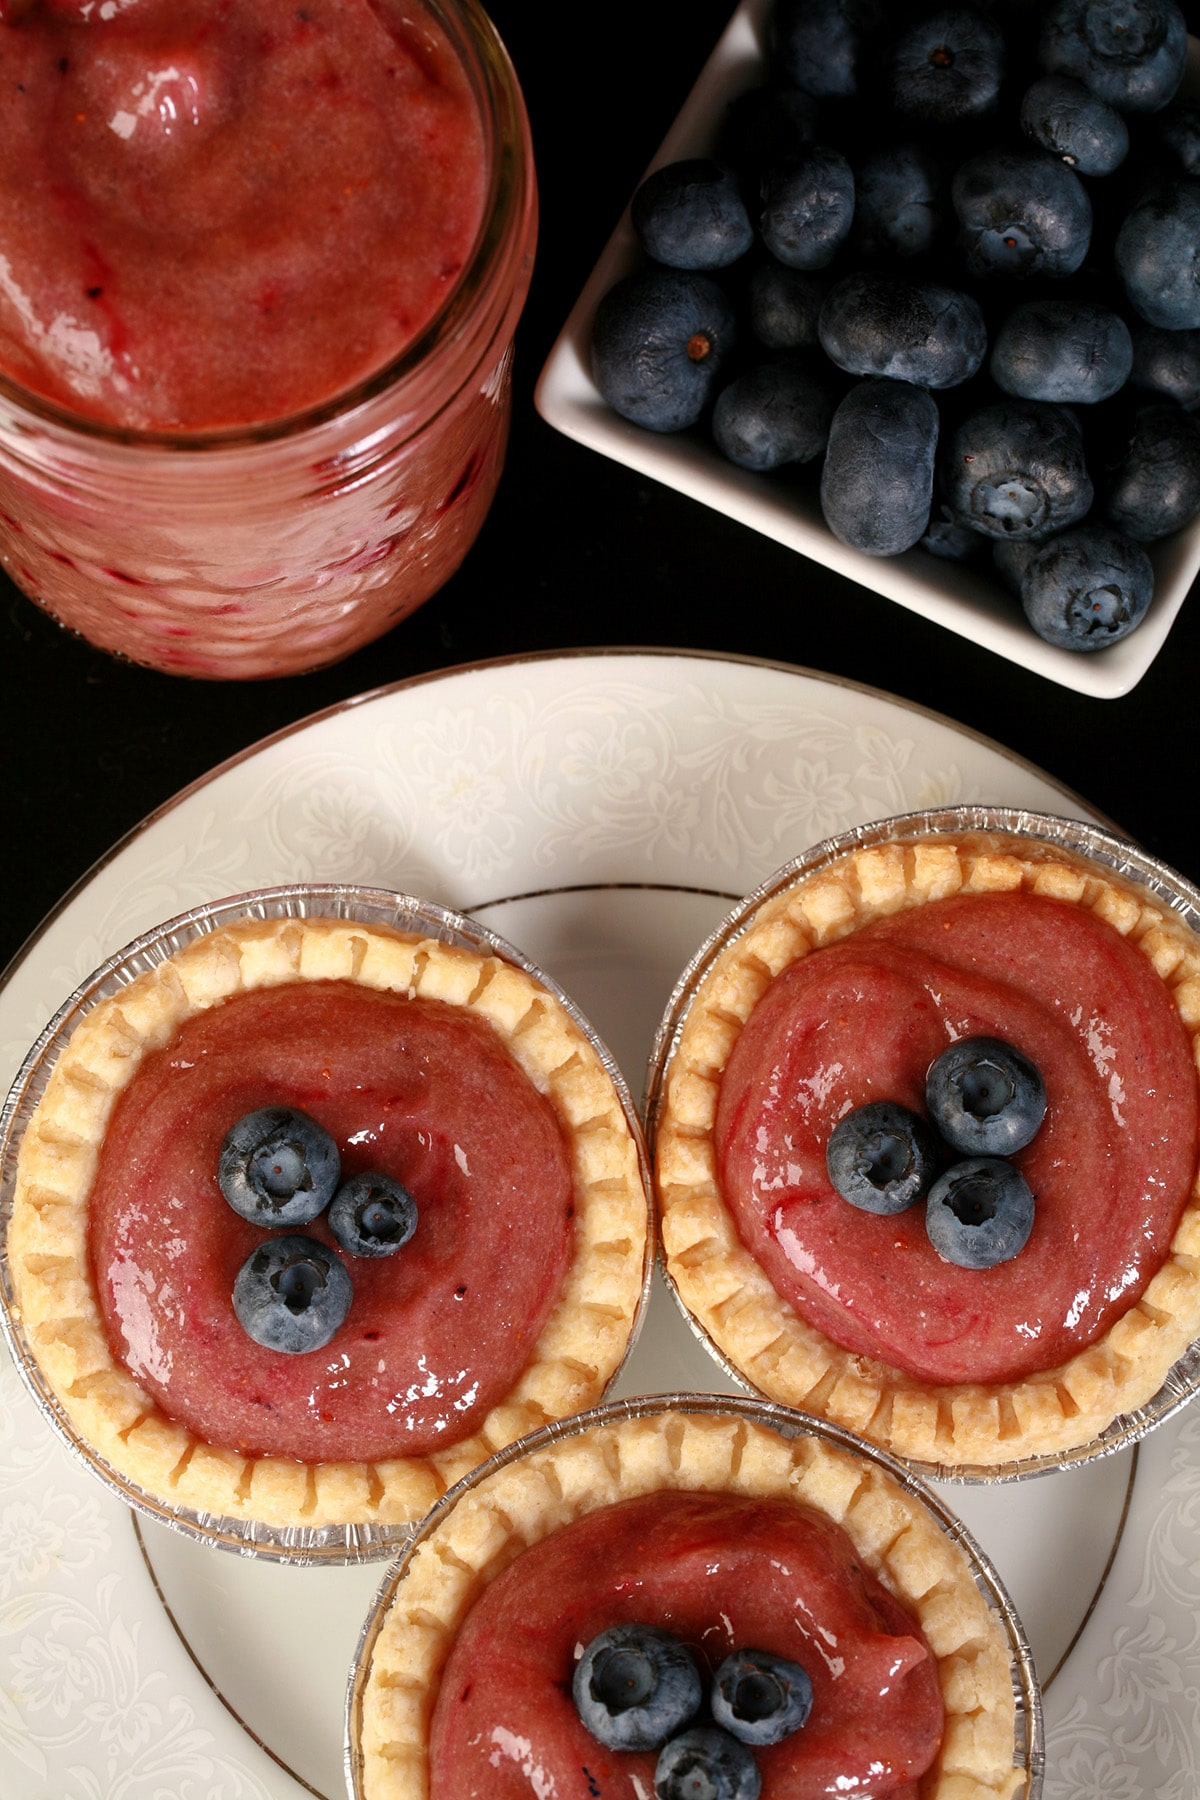 3 blueberry tarts on a plate, next to a jar of curd and a bowl of blueberries.